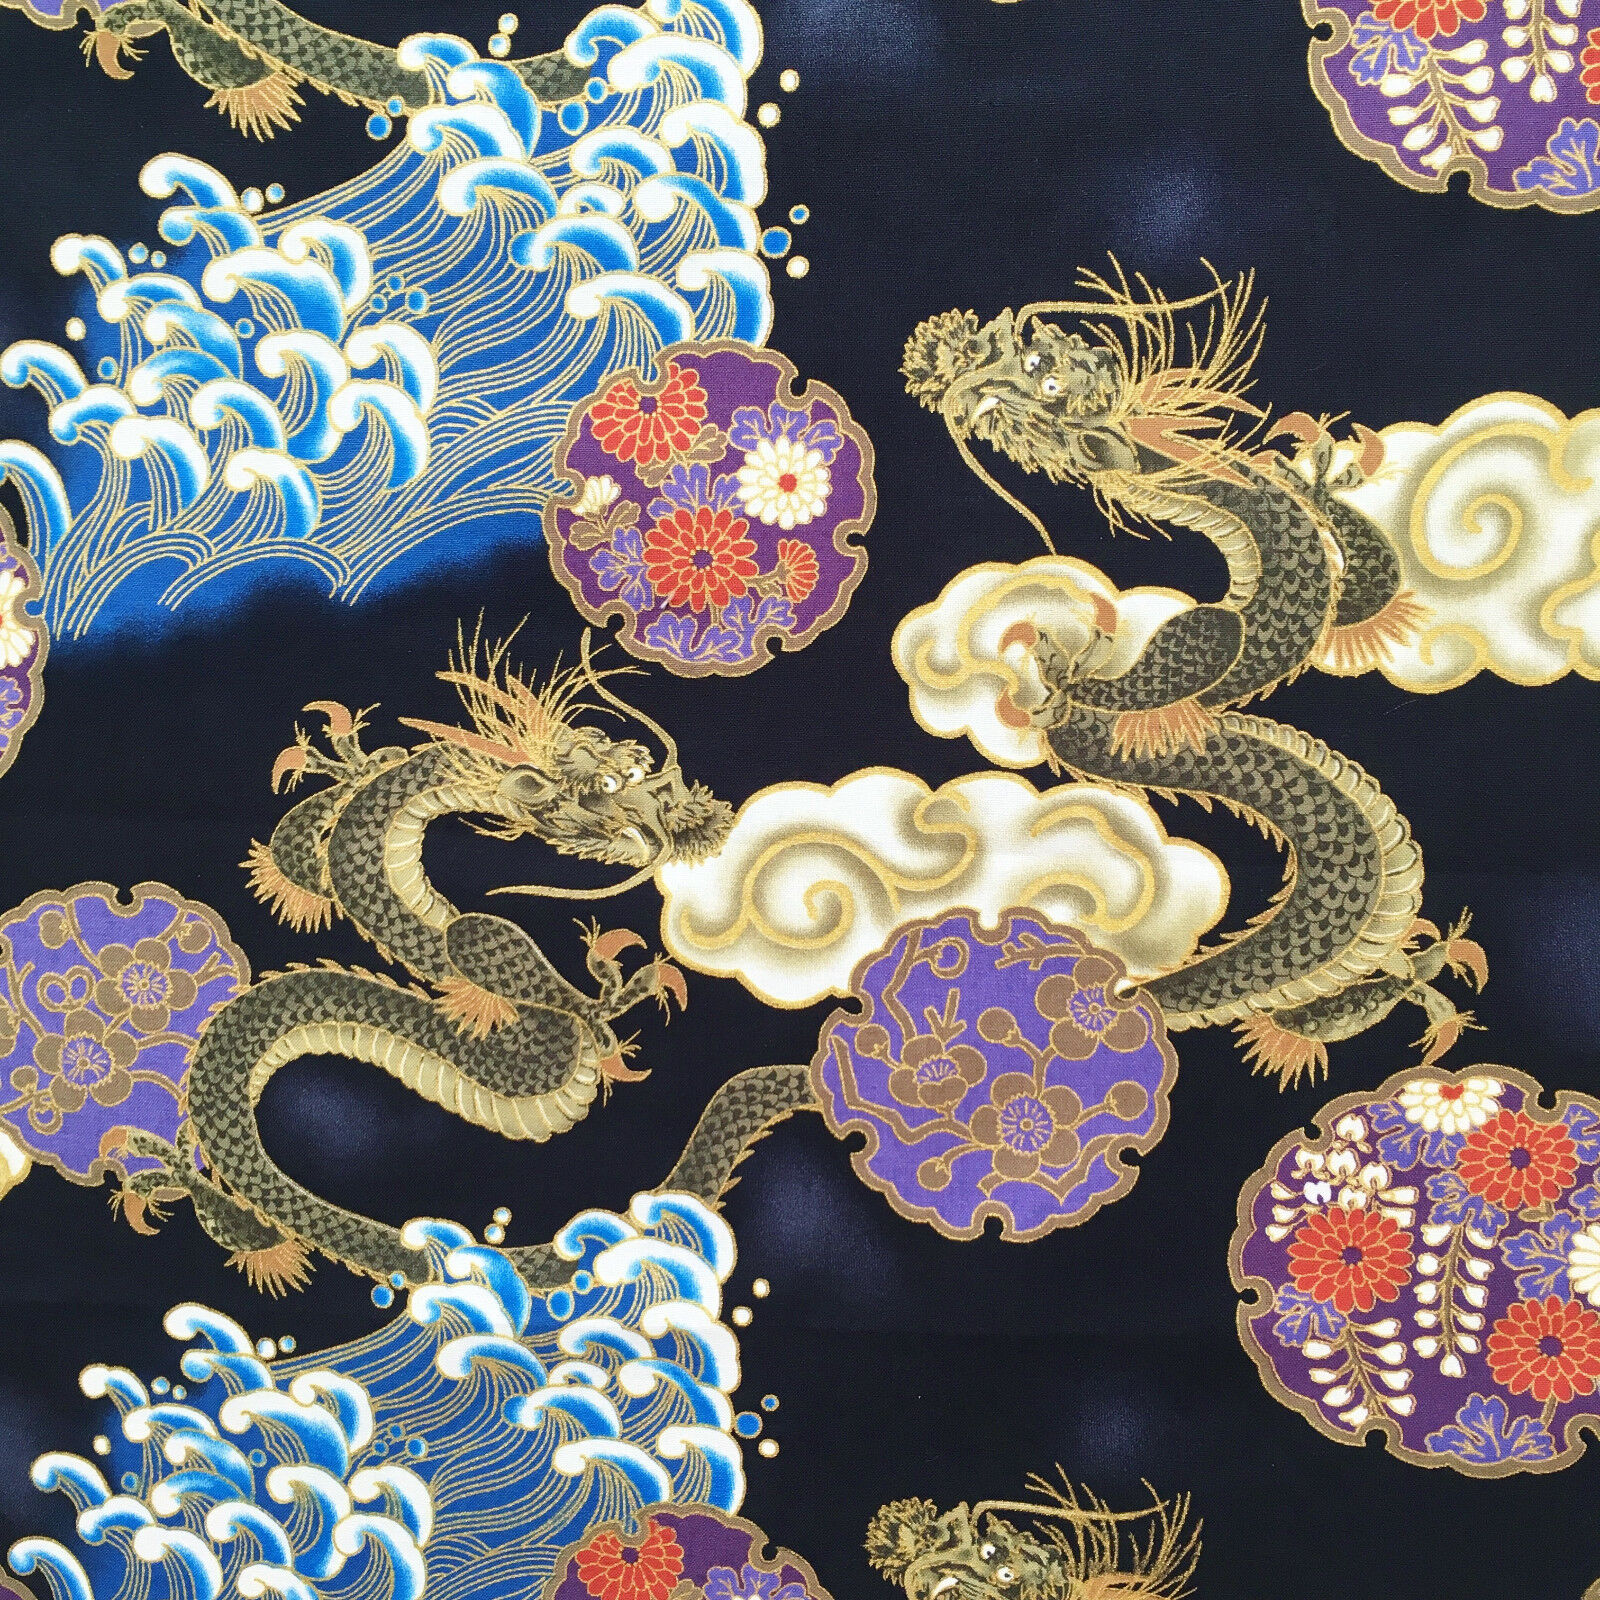 blueberries beads oriental Japanese Chinese style gold blue Metallic fabric